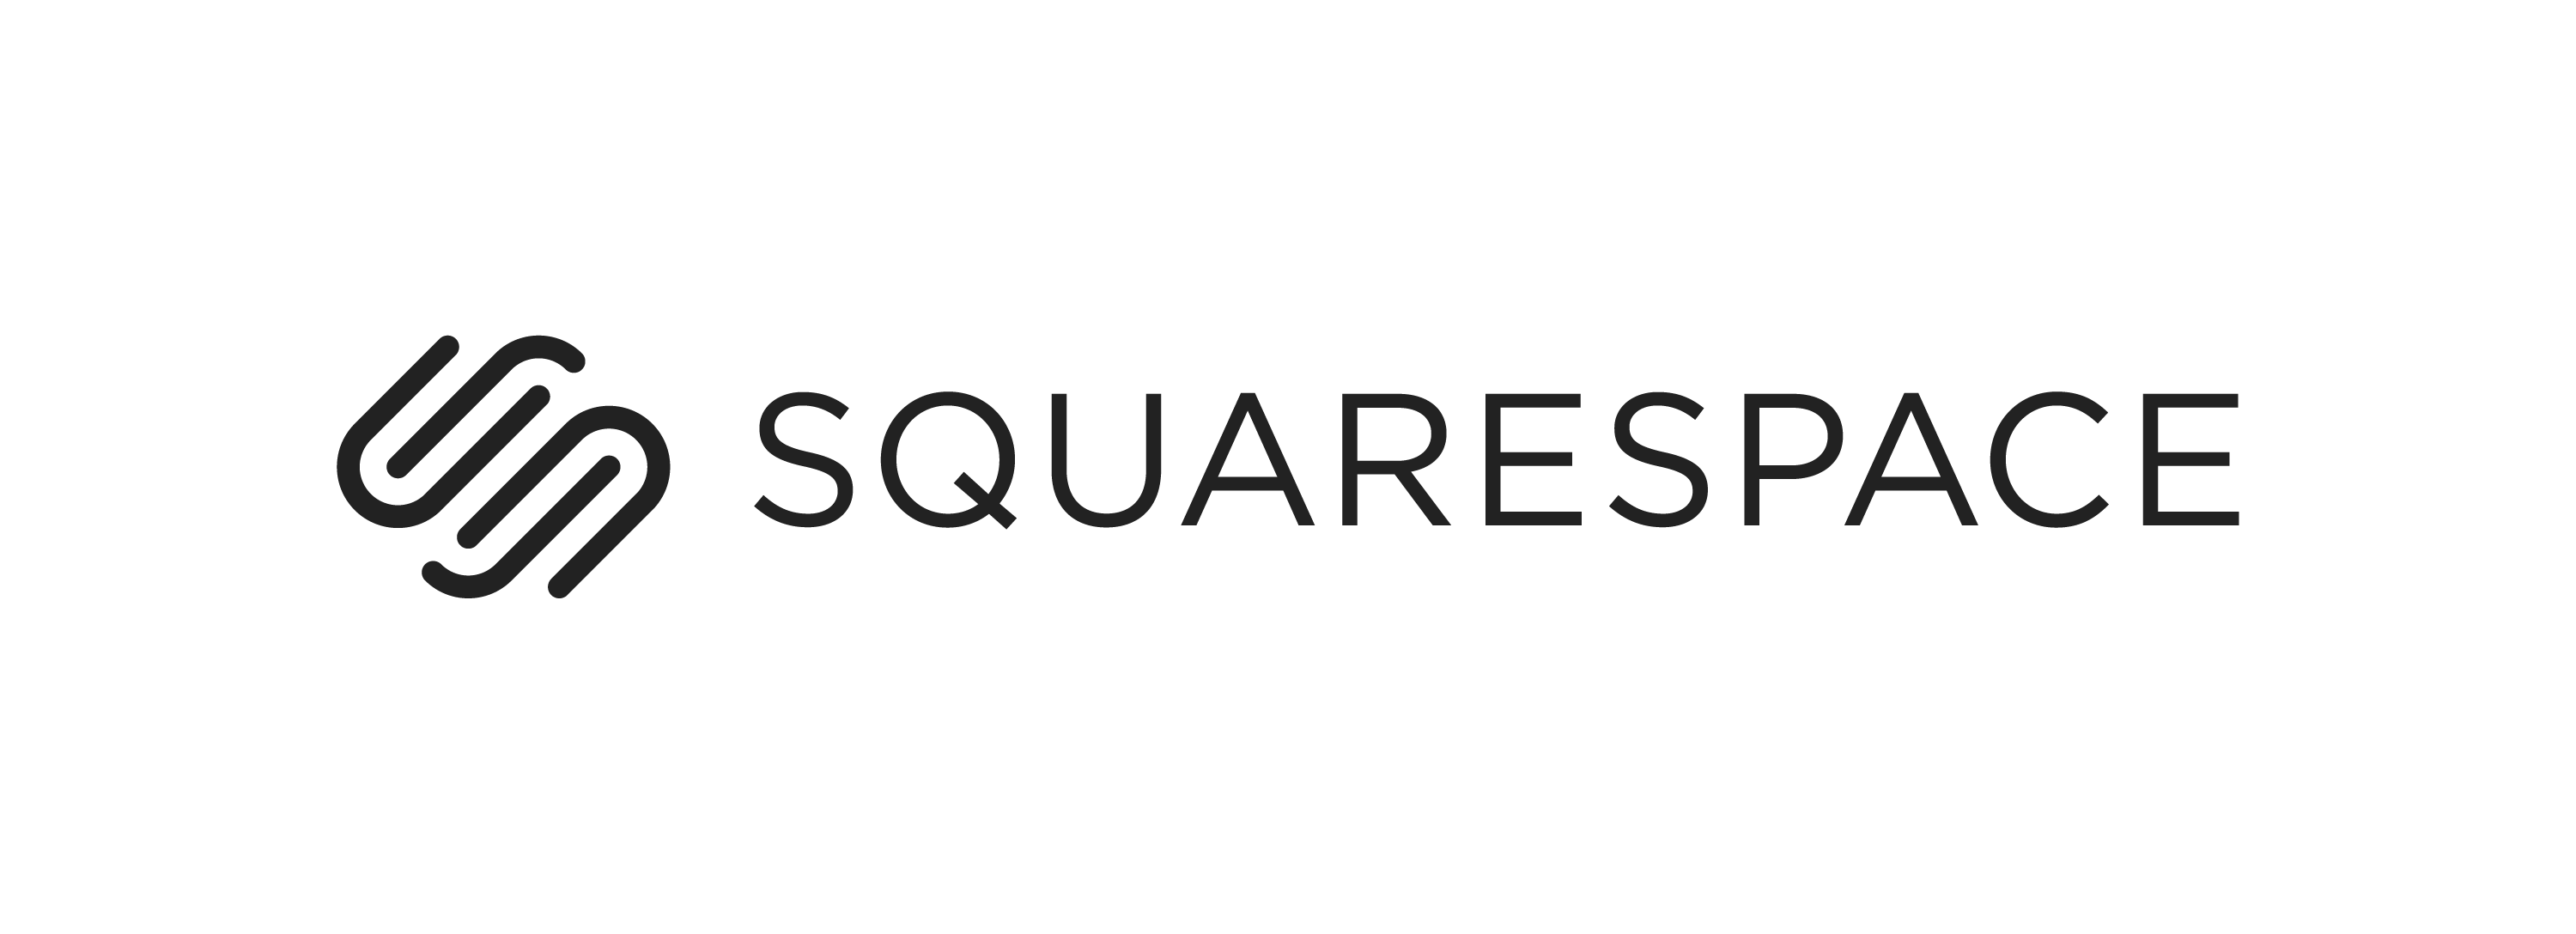 Squarespace logo horizontal black